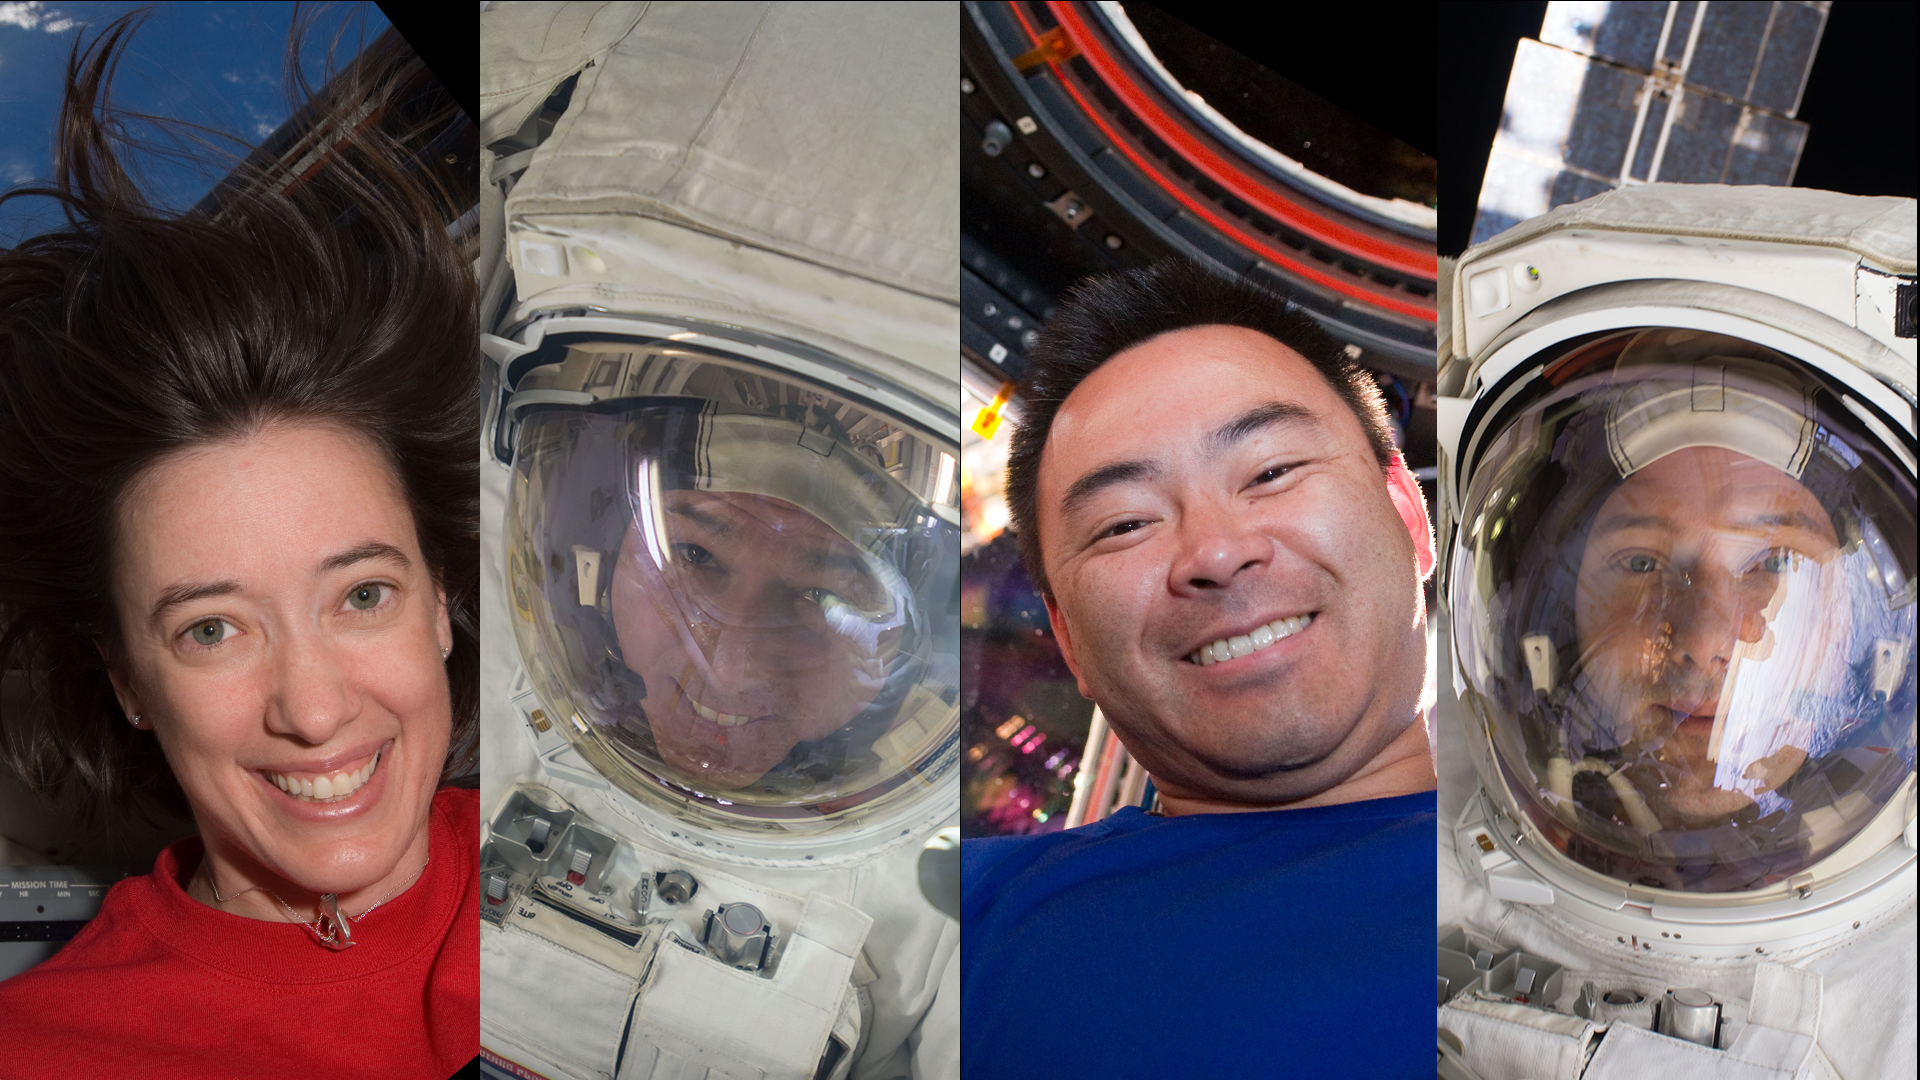 NASA Announces Astronauts to Fly on SpaceX Crew-2 Mission to Space Station